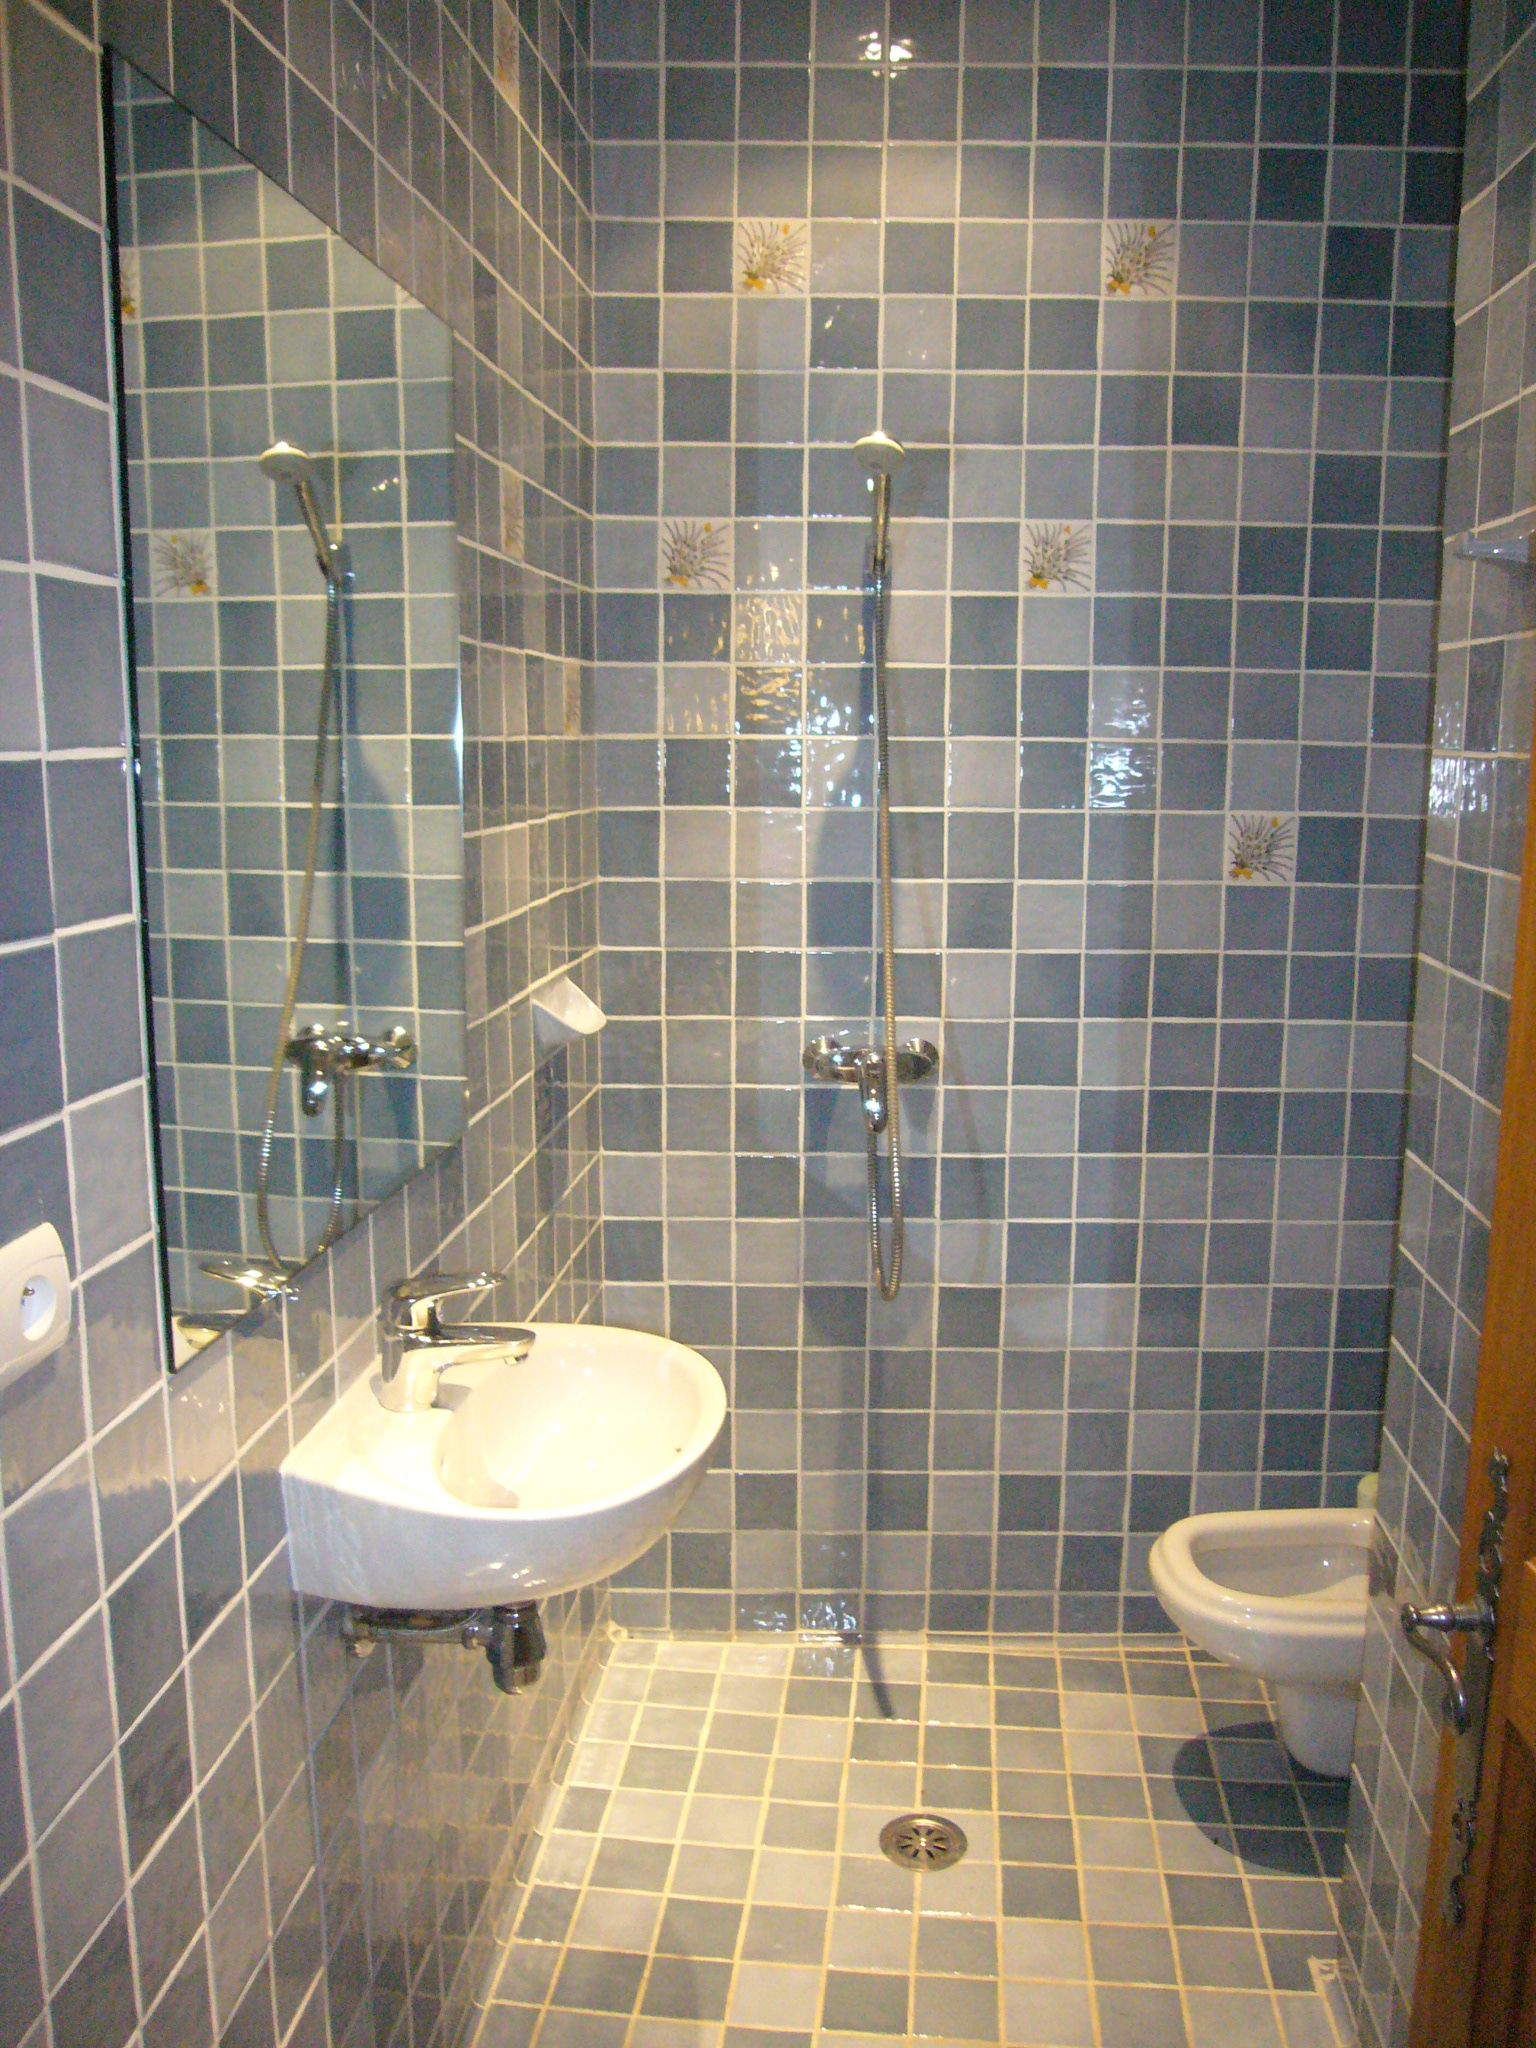 Plan 1 Toilet And Shower Sharing Space Wetroom